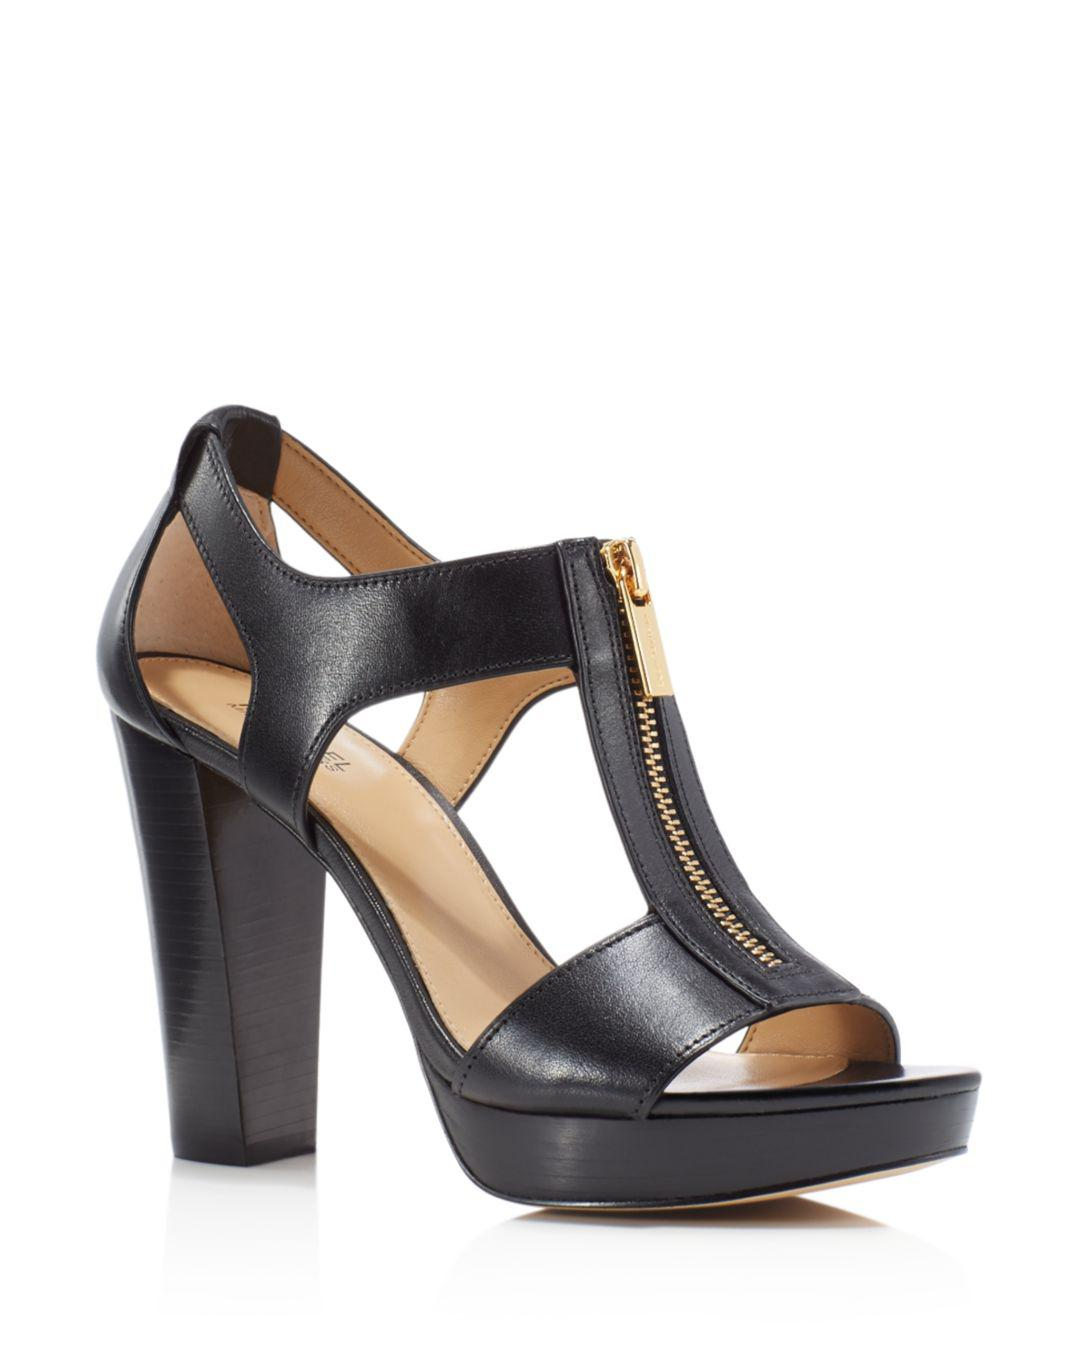 a958b20422b0 MICHAEL Michael Kors. Women s Black Berkley T-strap Platform Dress Sandals